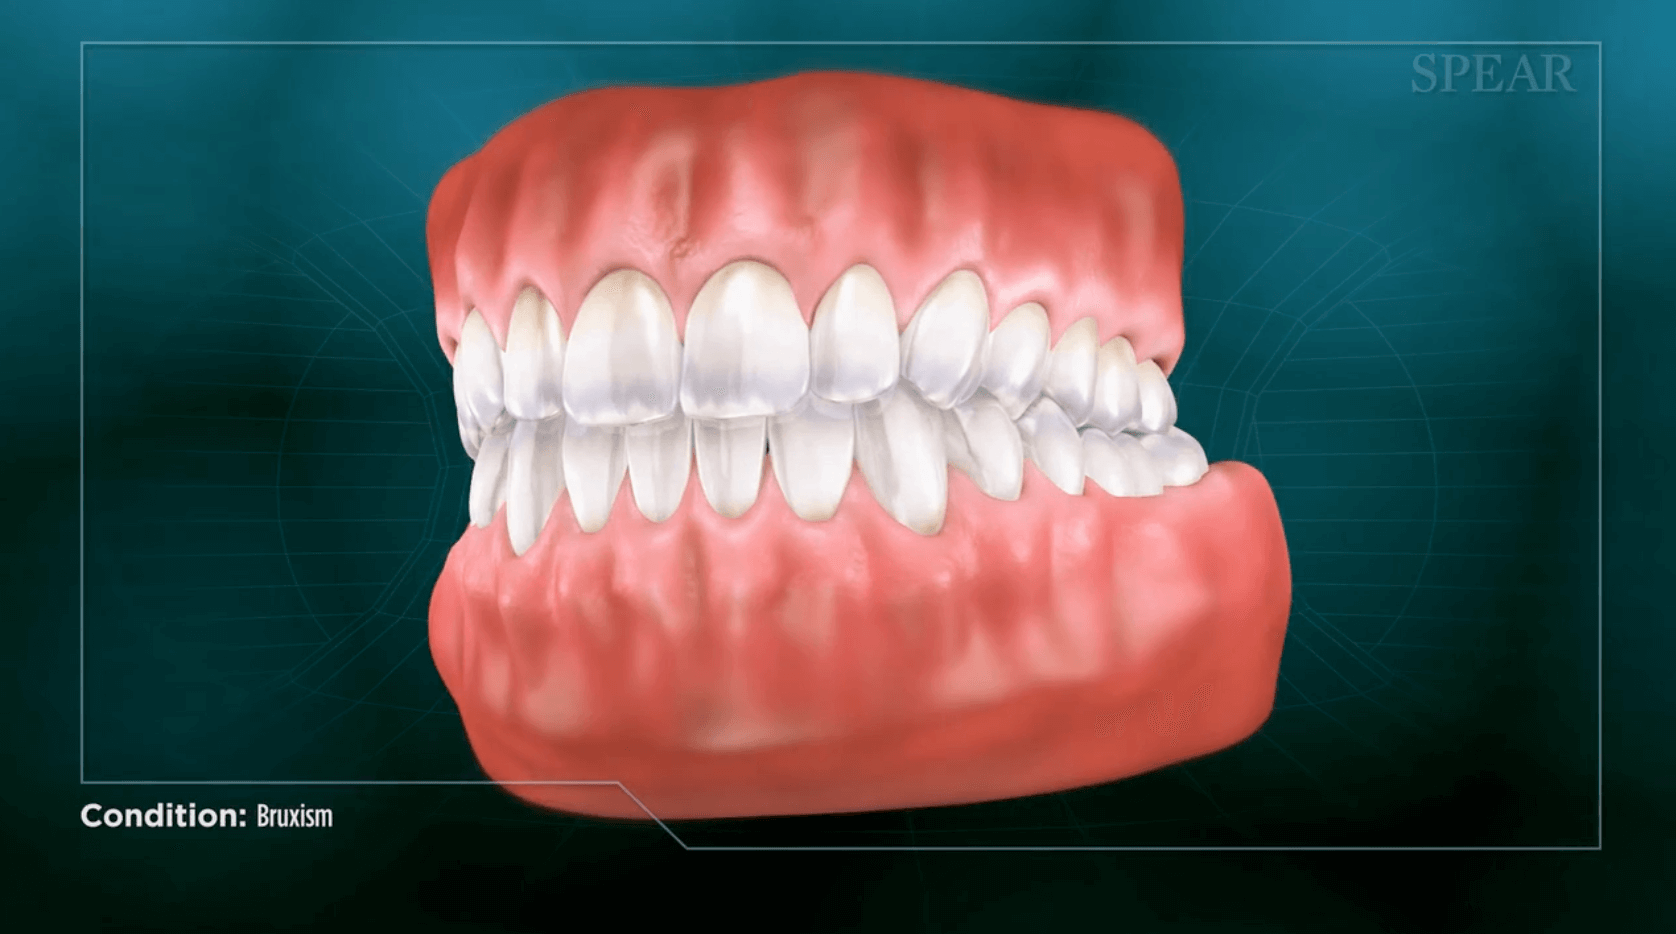 Finding treatment for bruxism and sleep apnea in San Jose.